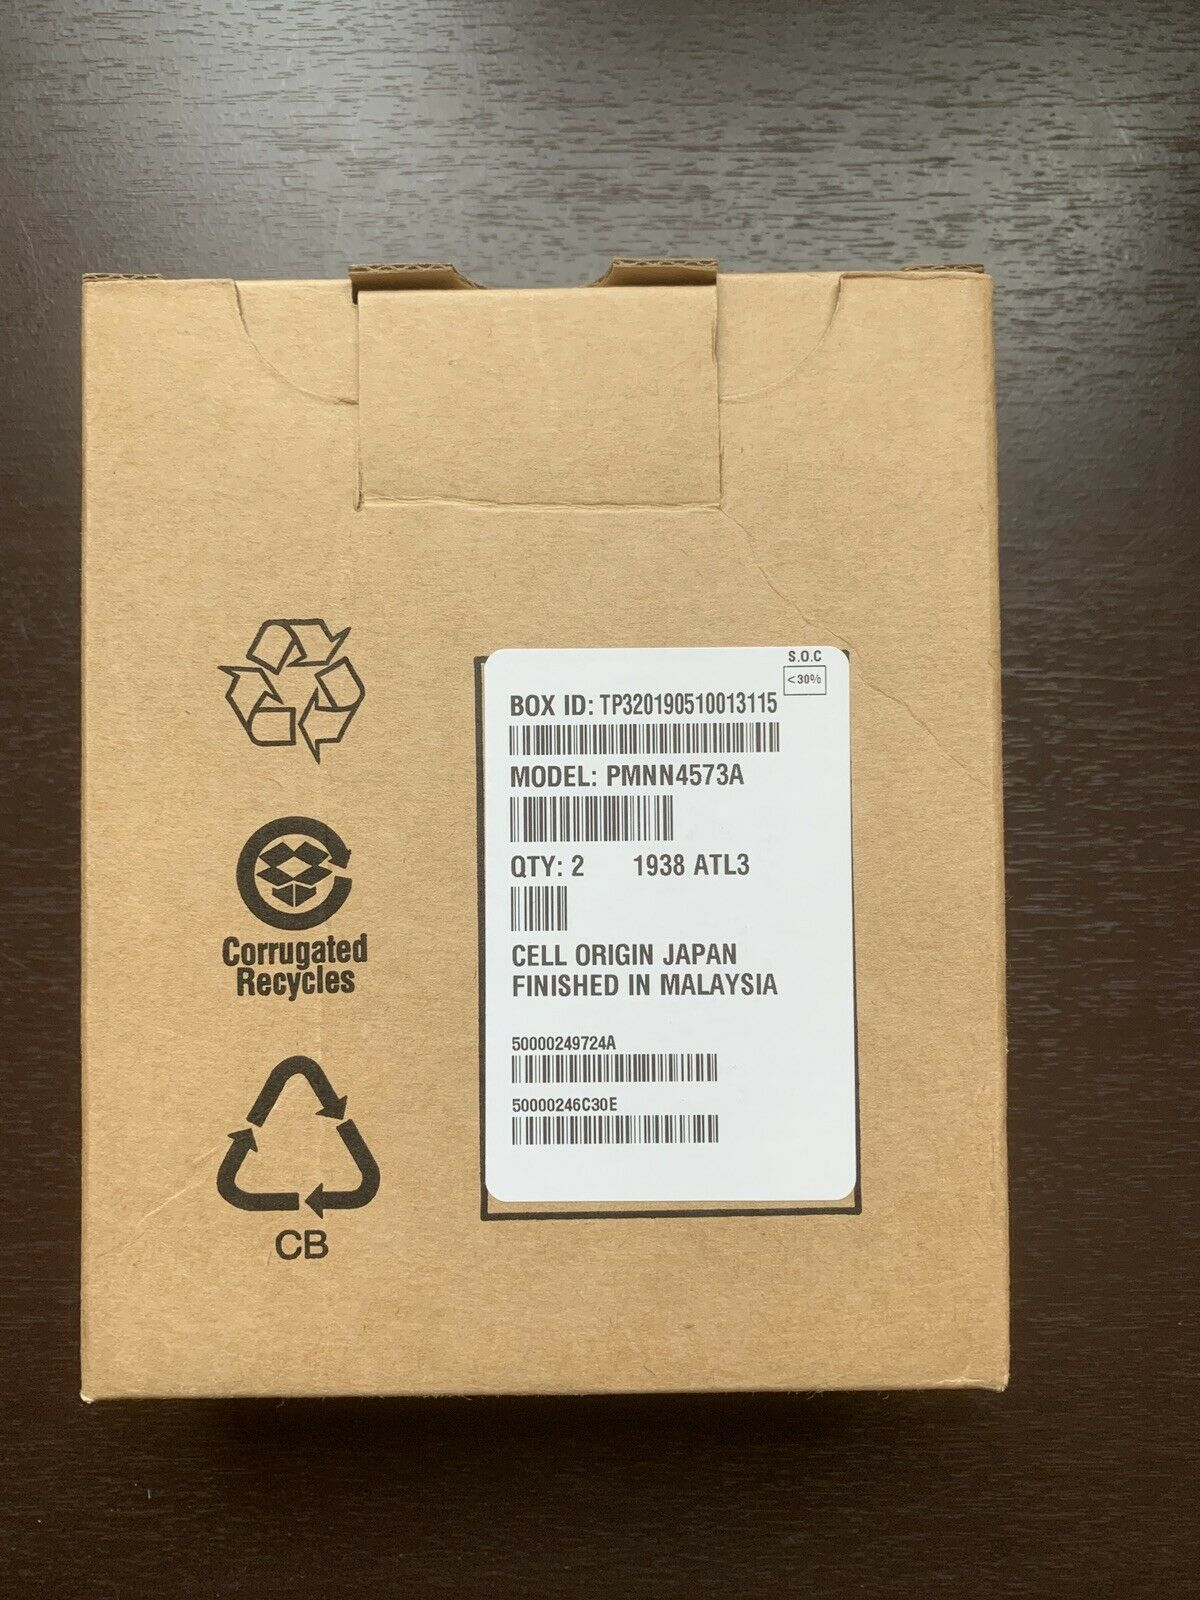 2-Motorola PMNN4573 extended battery for APX6000/APX7000.